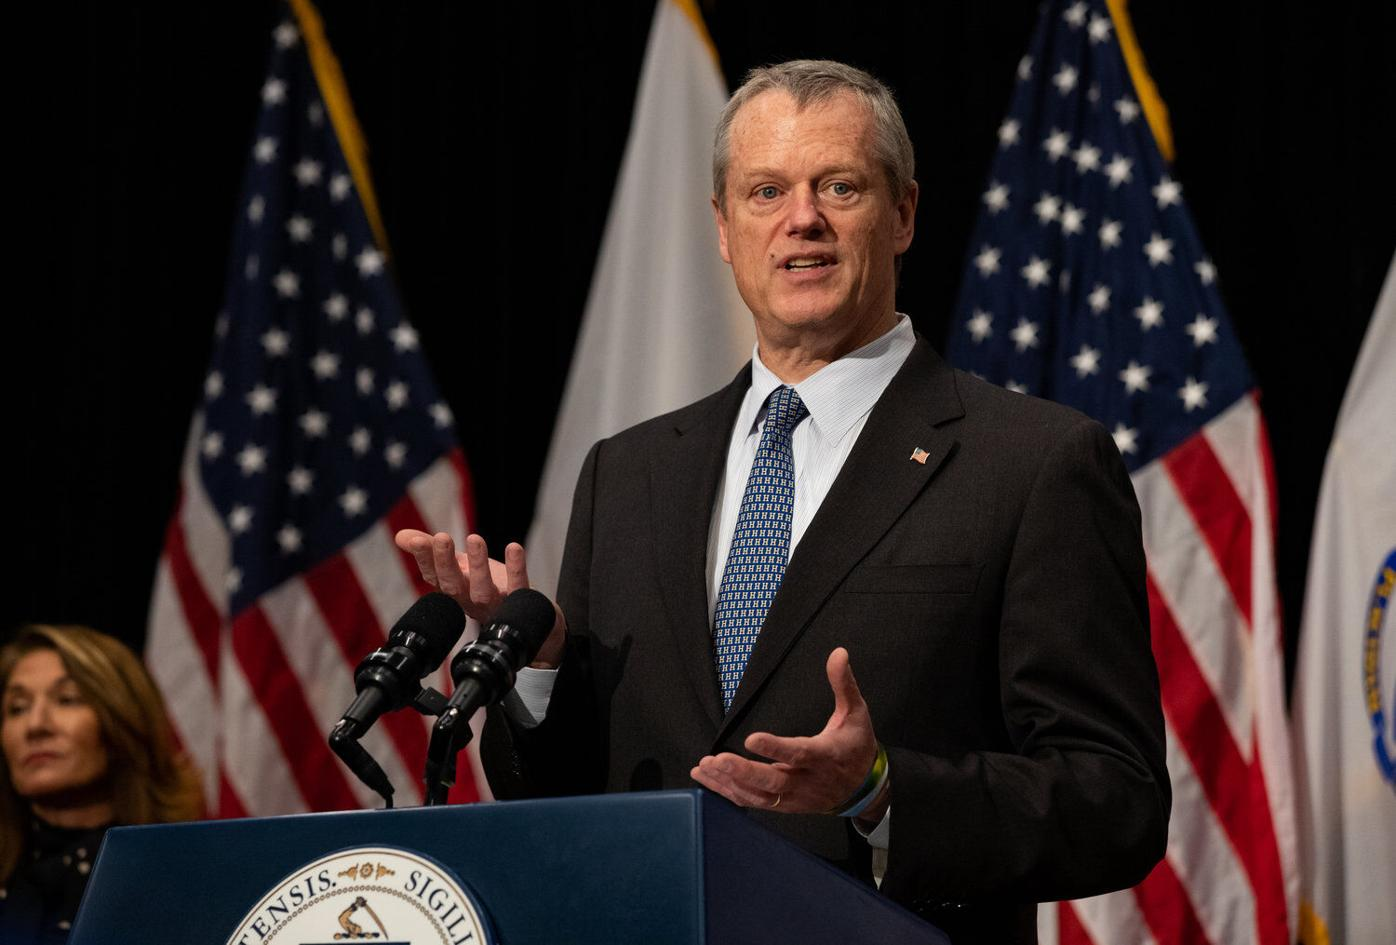 How to reopen Mass.? Baker seeks to balance public, economic health